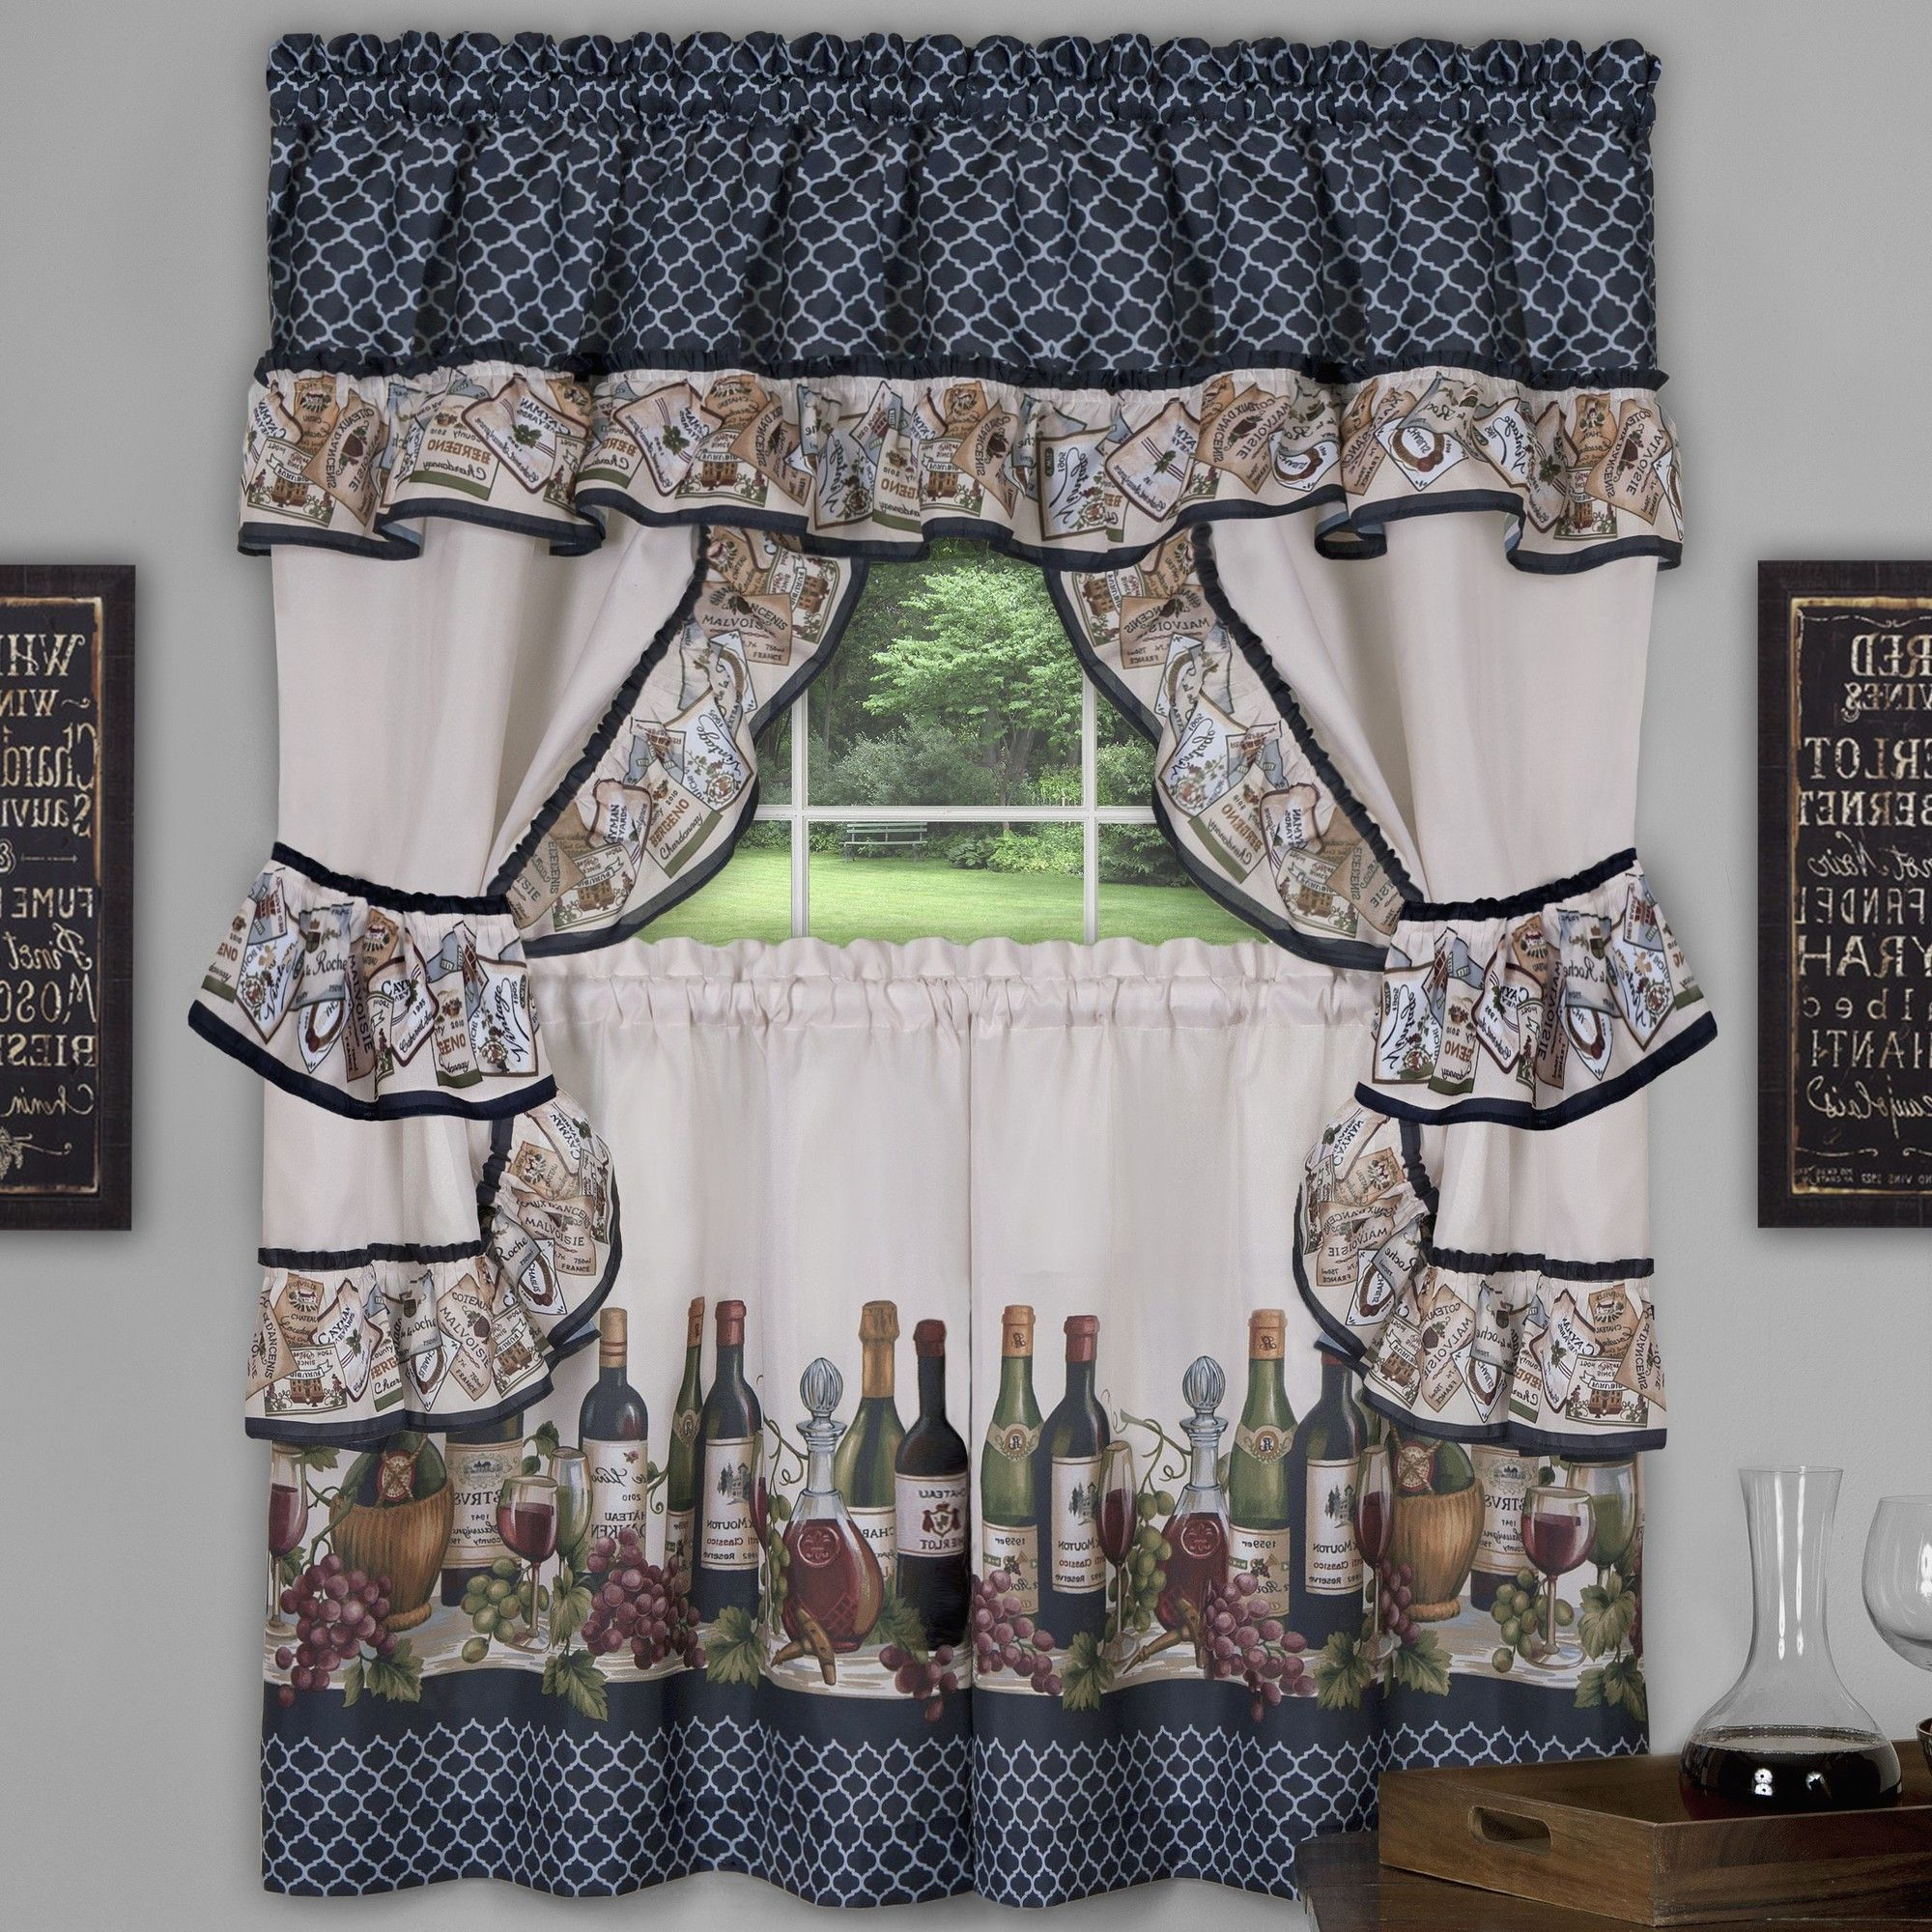 """Chateau Wines Cottage Kitchen Curtain Tier And Valance Sets Inside 2021 Chateau 57"""" Valance And Tier Set (View 3 of 20)"""